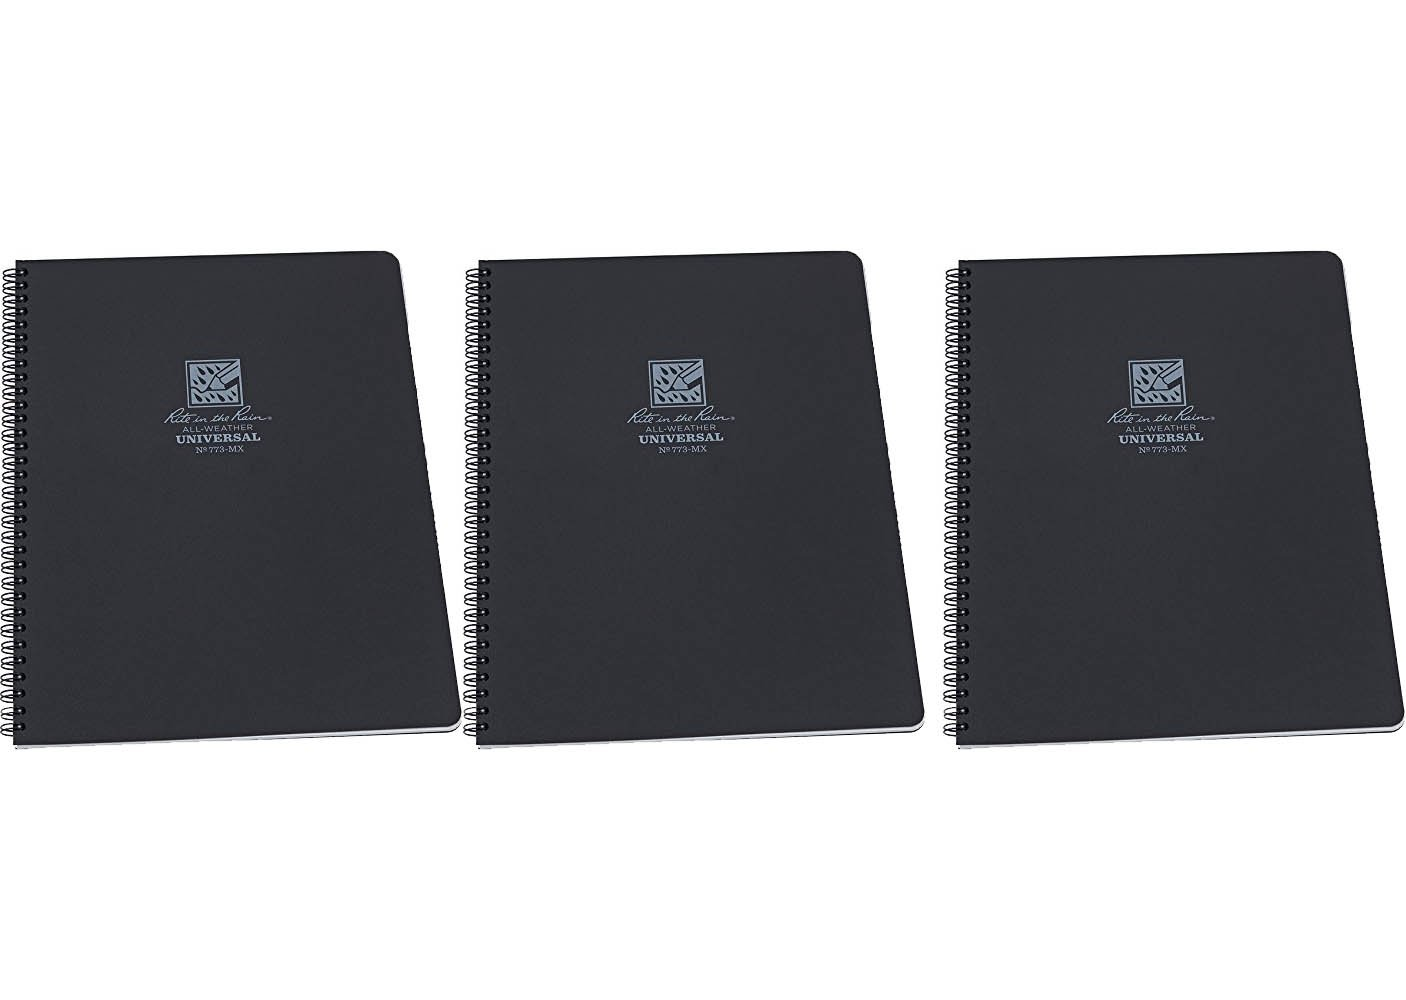 Rite in the Rain 773-MX 84-Pages Black Waterproof Universal Notebook, 3-Pack by Rite In The Rain